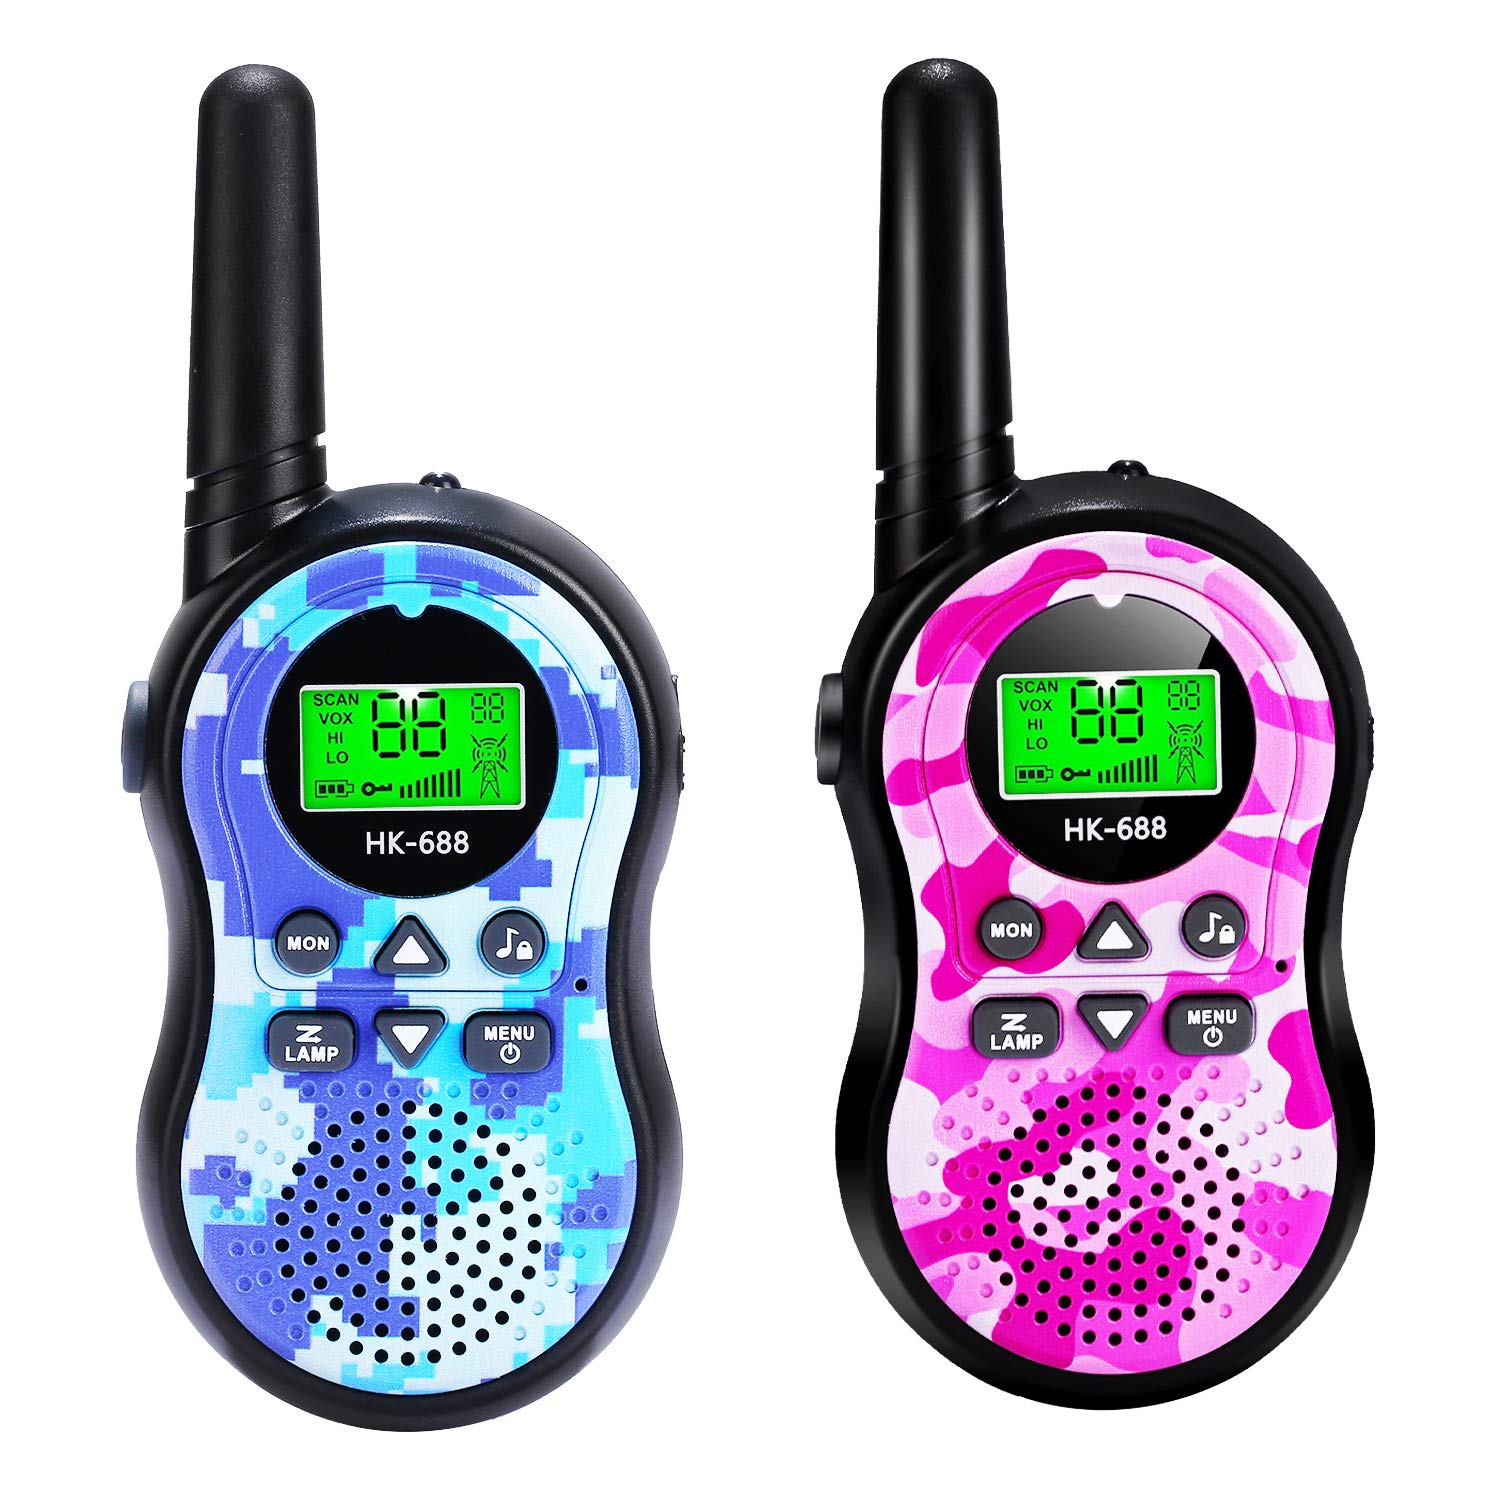 SeaMeng walkie talkies for Kids Best Gifts for boy Girls Age 3 4 5 6 7 8 9 Toys, 22 Channel 2 Way Radio 3 Mile Long Range, Outdoor Adventures Camping Hiking